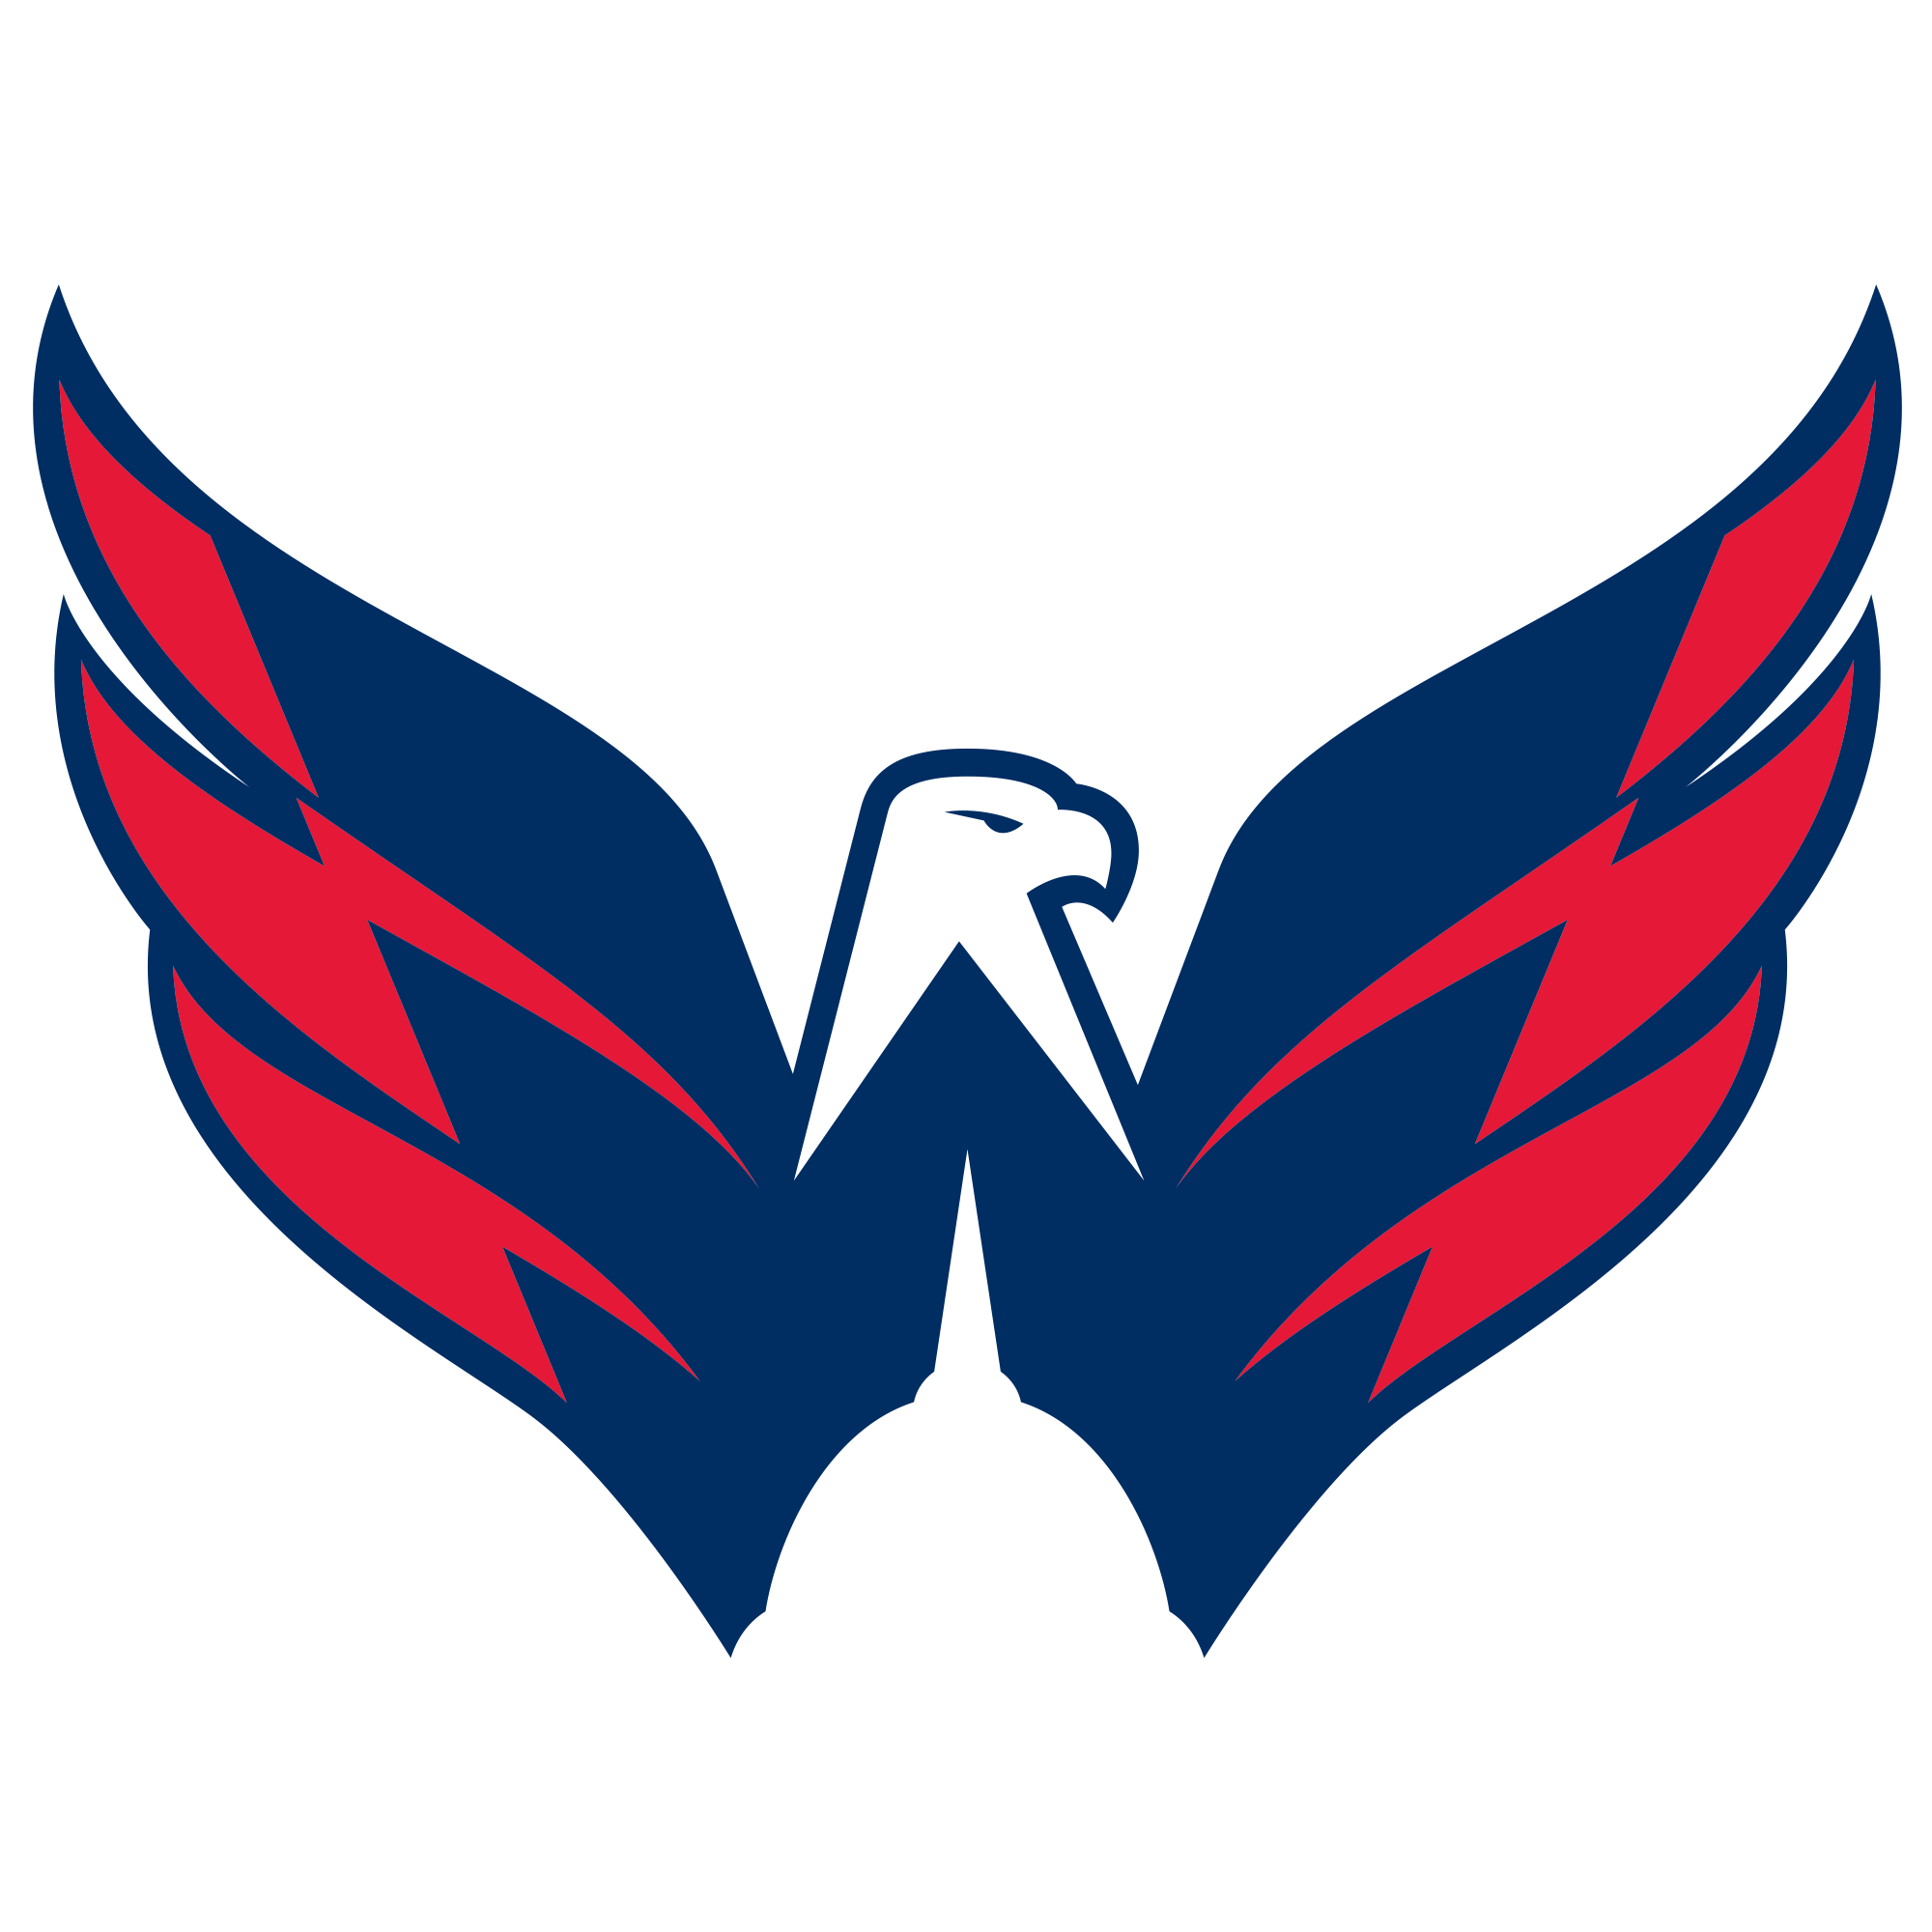 Dowd is one of only two new completely new players to the Washington Capitals in addition to forward Dmitrij Jaskin